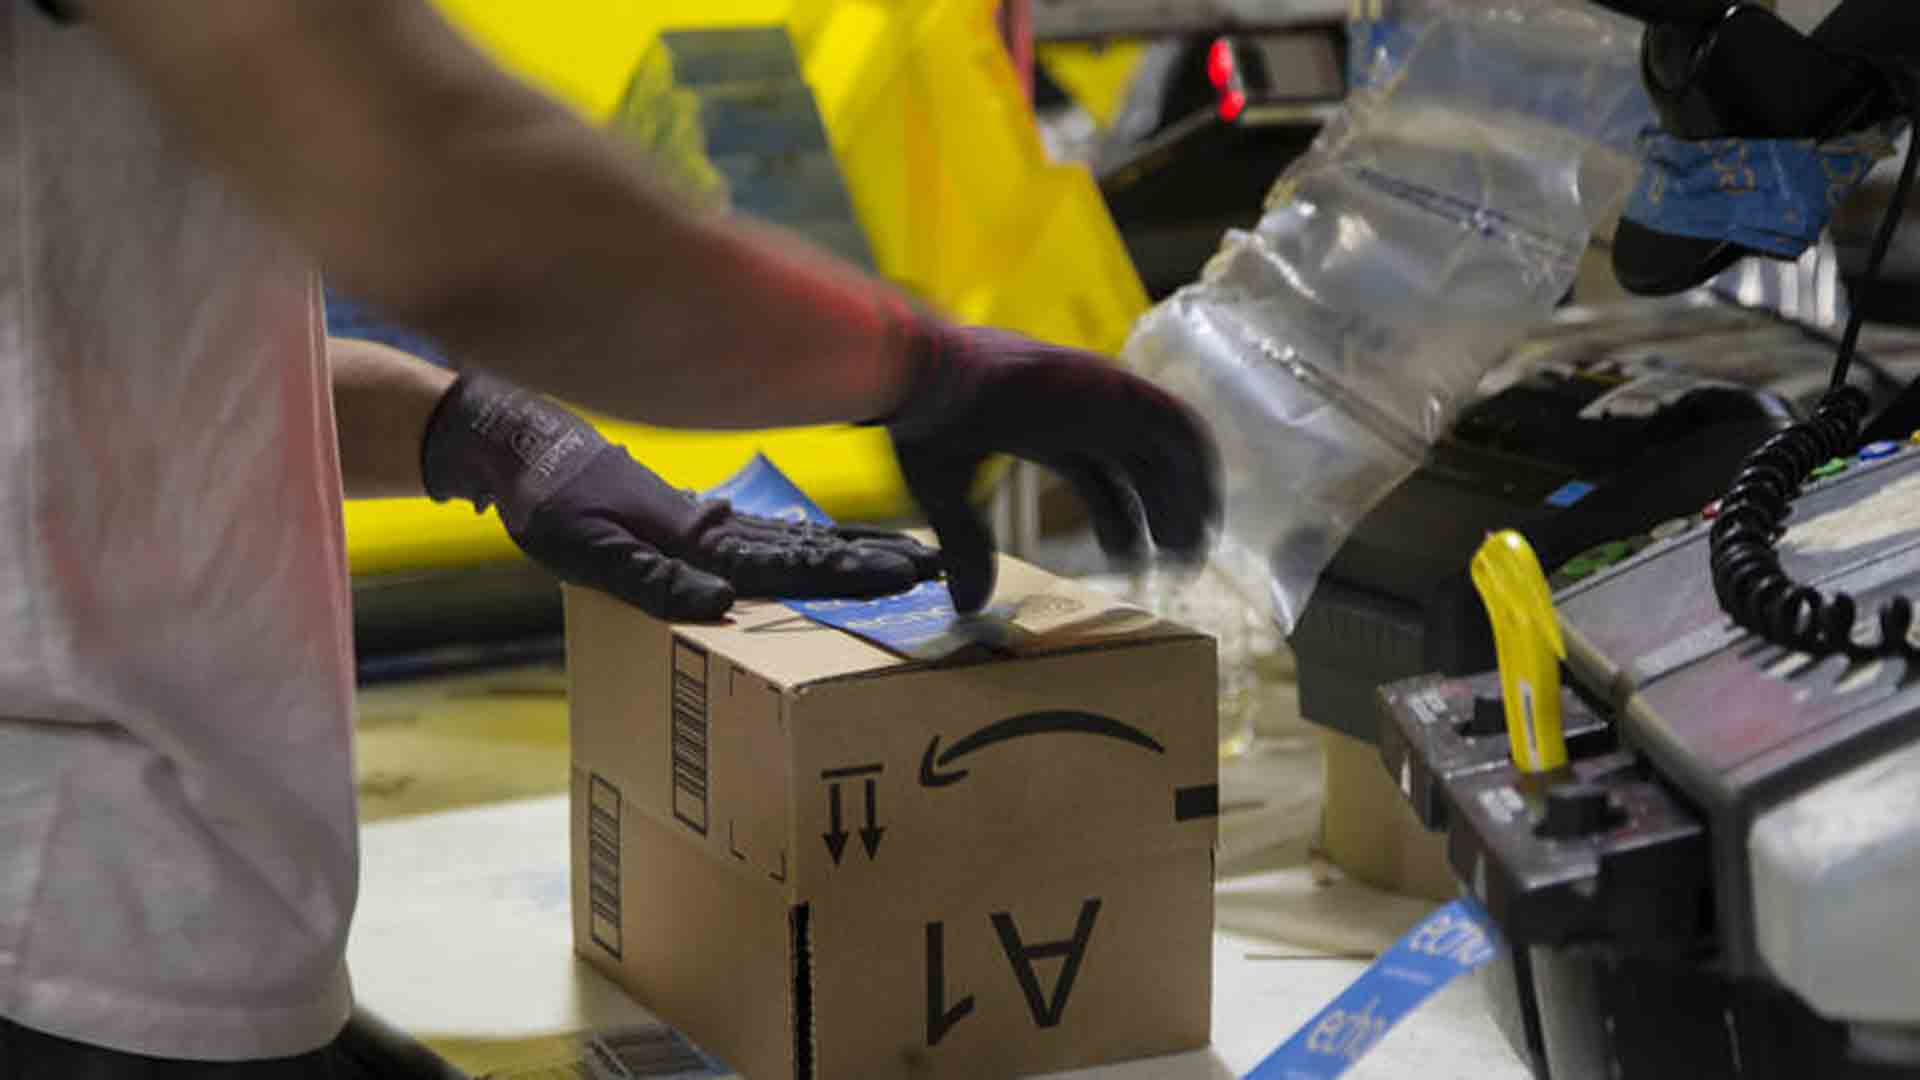 A worker tapes a box while packing items on Cyber Monday at the Amazon Fulfillment Center in San Bernardino. (Credit: Gina Ferazzi / Los Angeles Times)